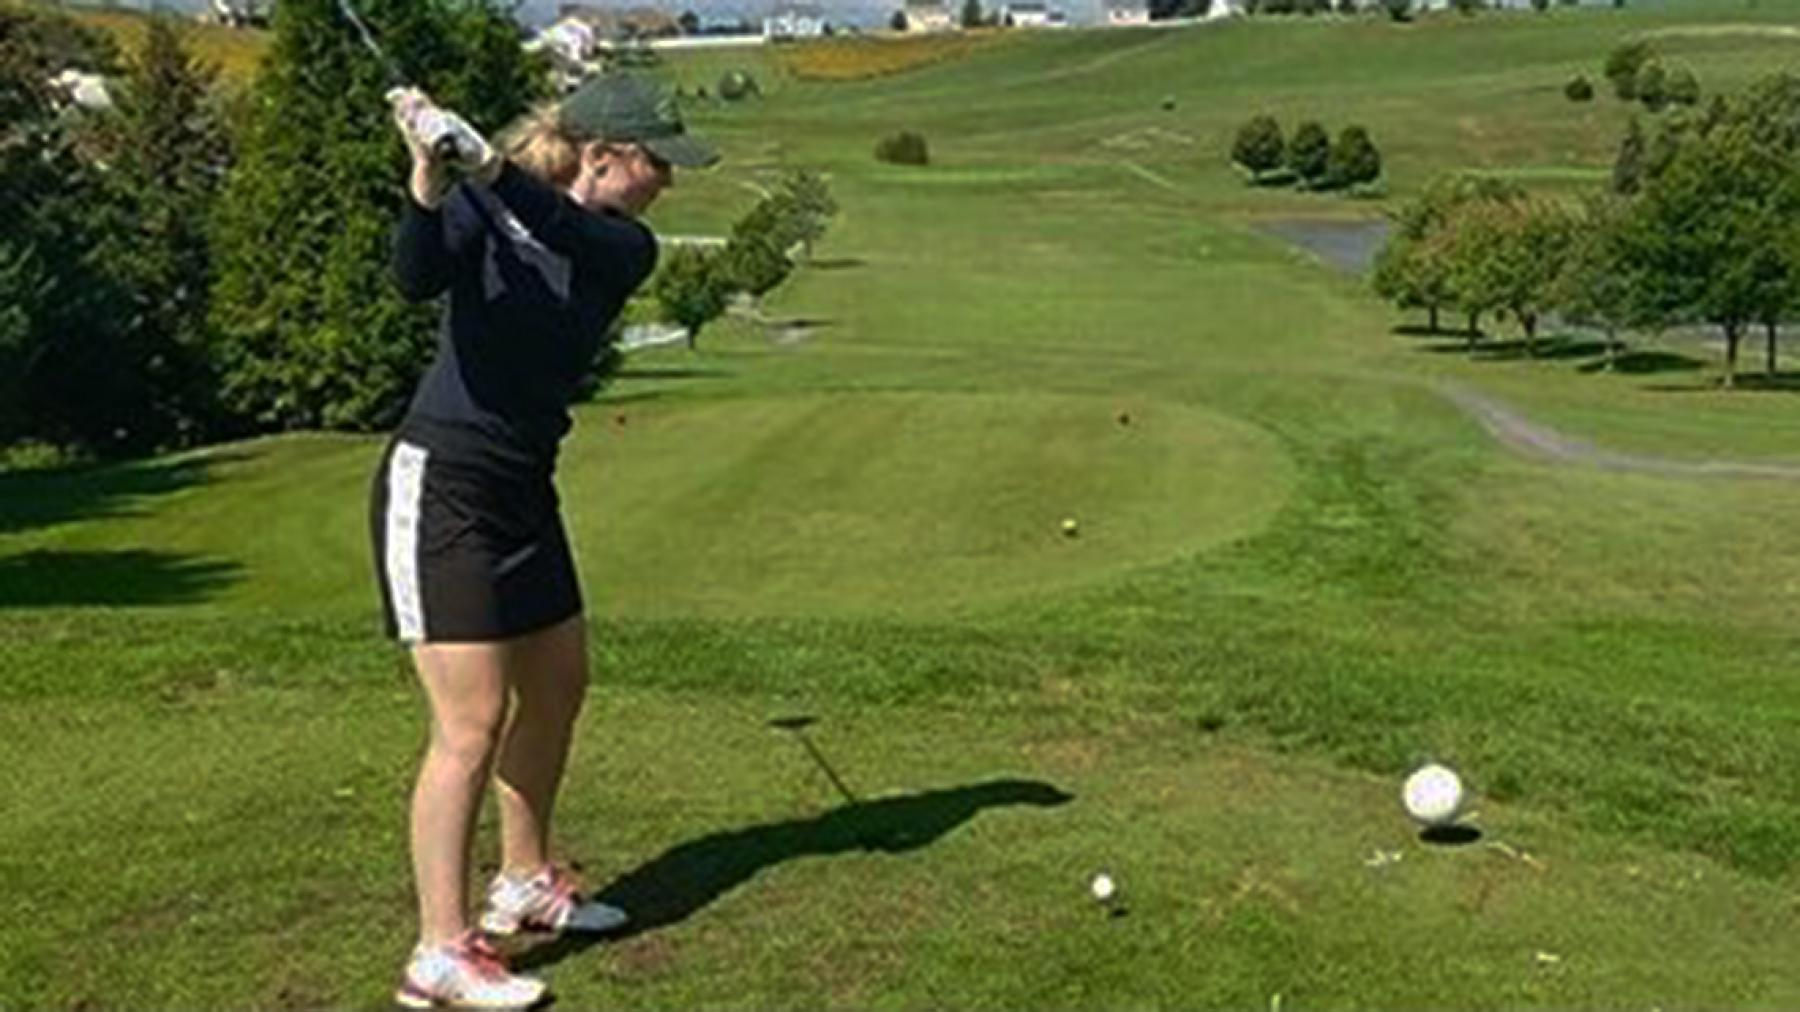 Swanson, Shaw named to #RSC Women's Golf Scholar-Athlete team for #PPUGOLF